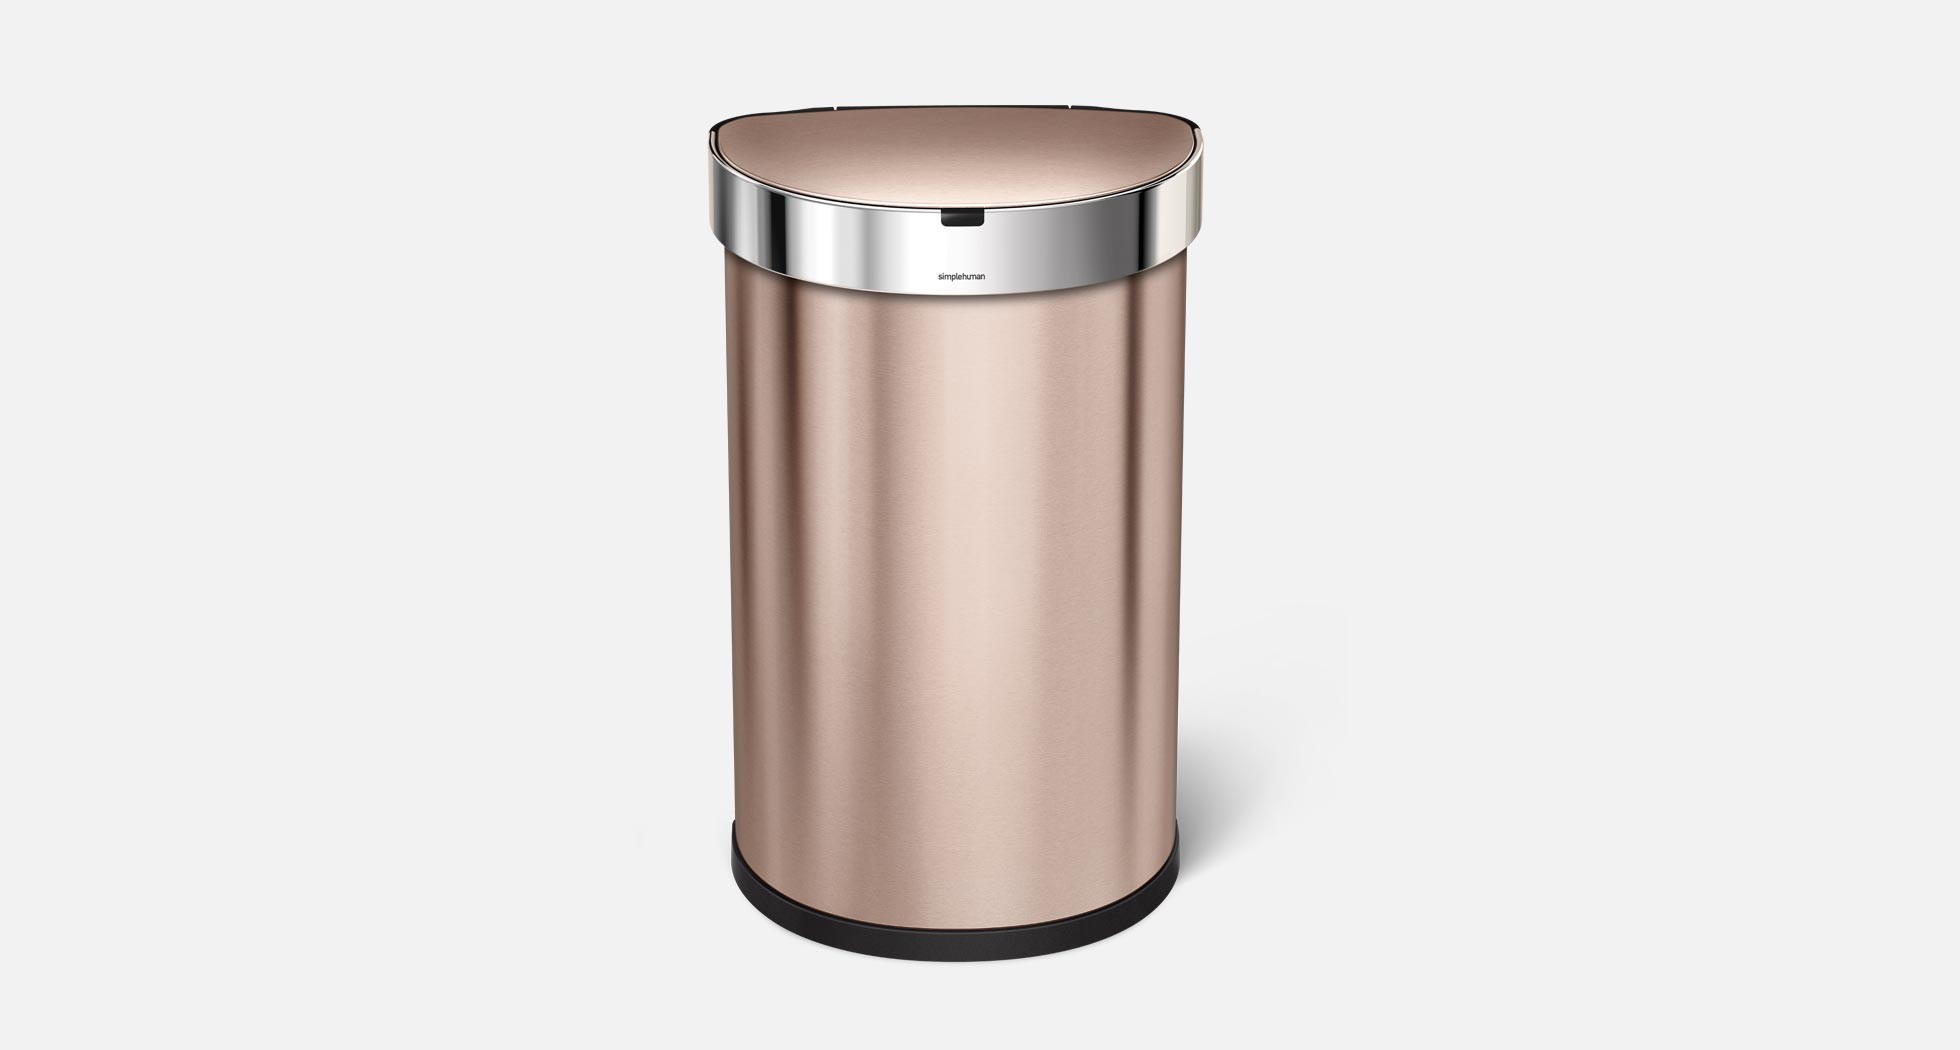 Simplehuman 45l Semi Round Rose Gold Stainless Steel